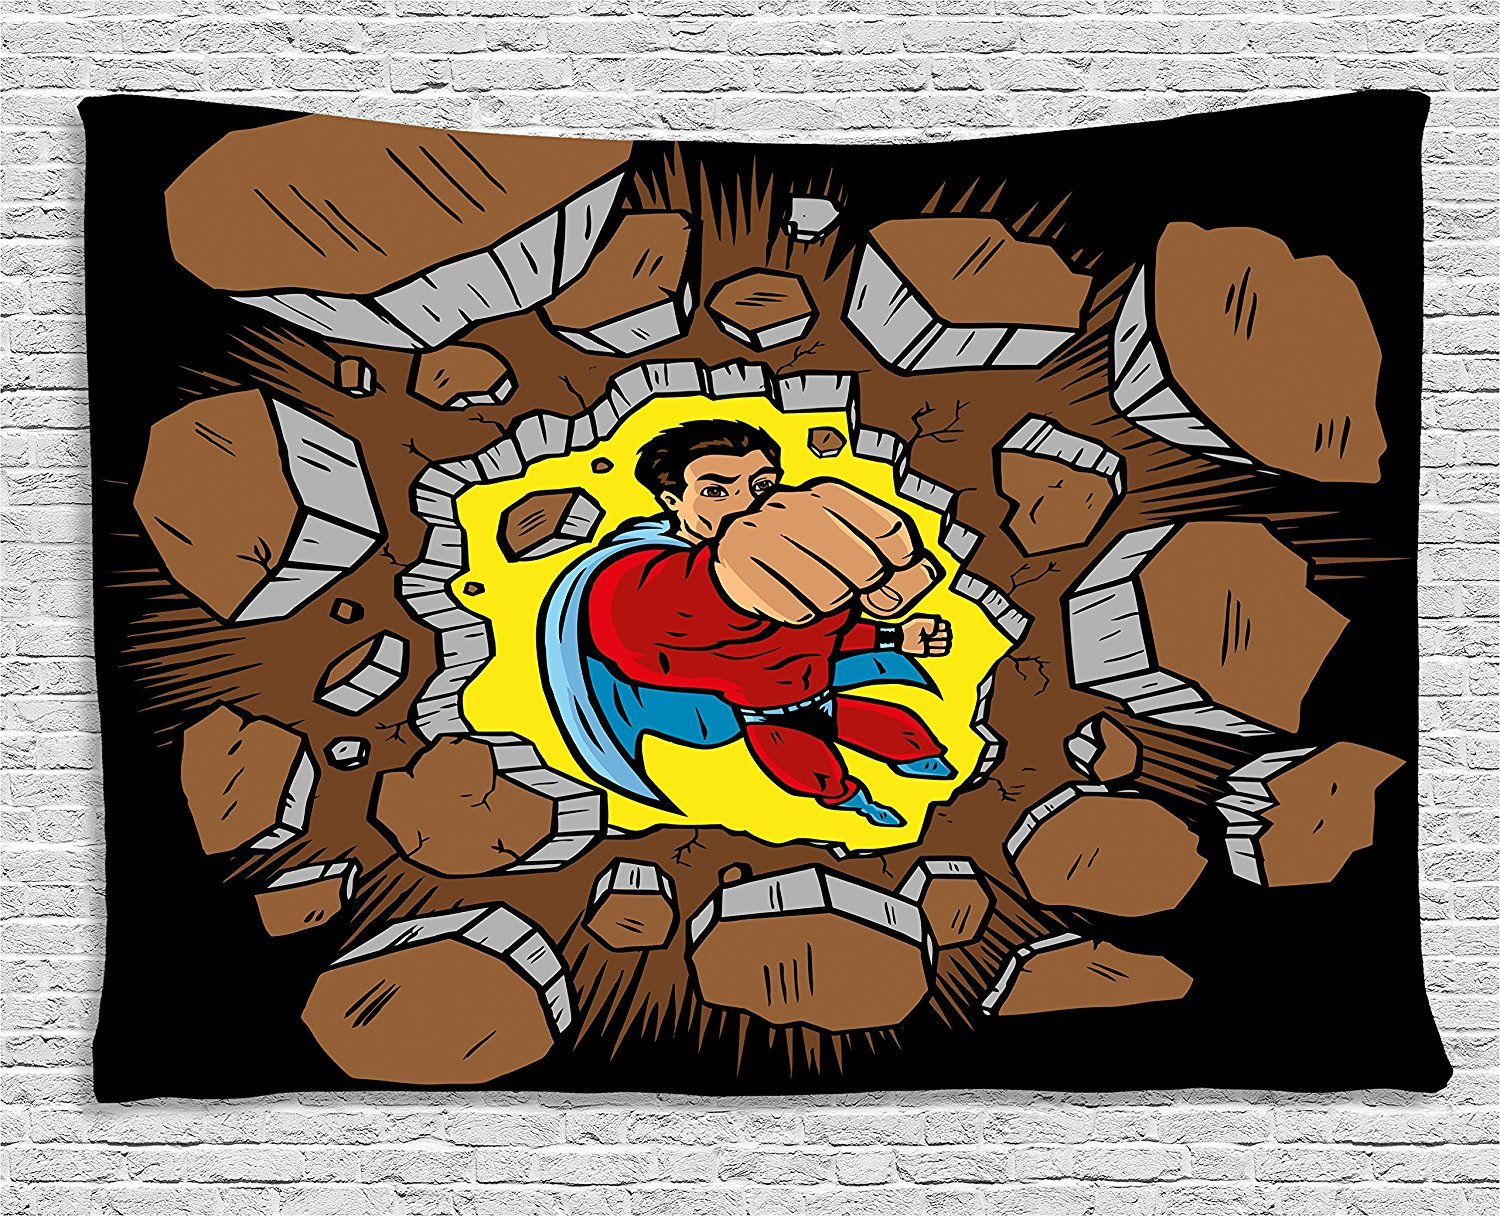 asddcdfdd Superhero Tapestry, Strong Man Smashing the Wall Heroic Punch Success Business Retro Print, Wall Hanging for Bedroom Living Room Dorm, 80 W X 60 L Inches, Caramel Black Yellow